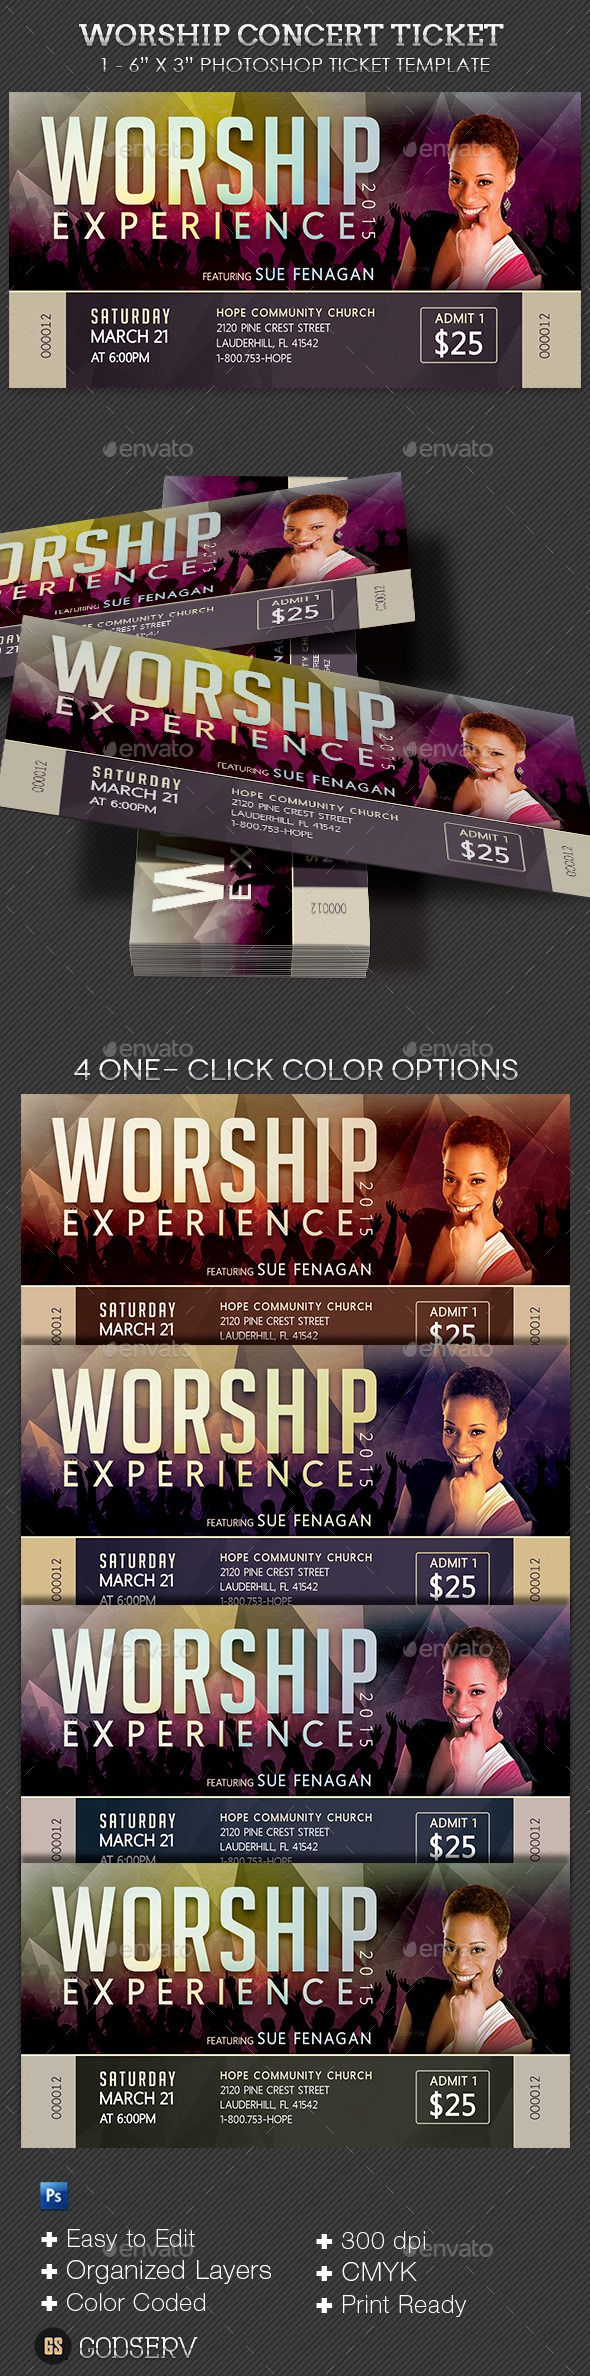 Worship Concert Ticket Template PSD. Download here: https://graphicriver.net/item/worship-concert-ticket-template/10472154?ref=ksioks